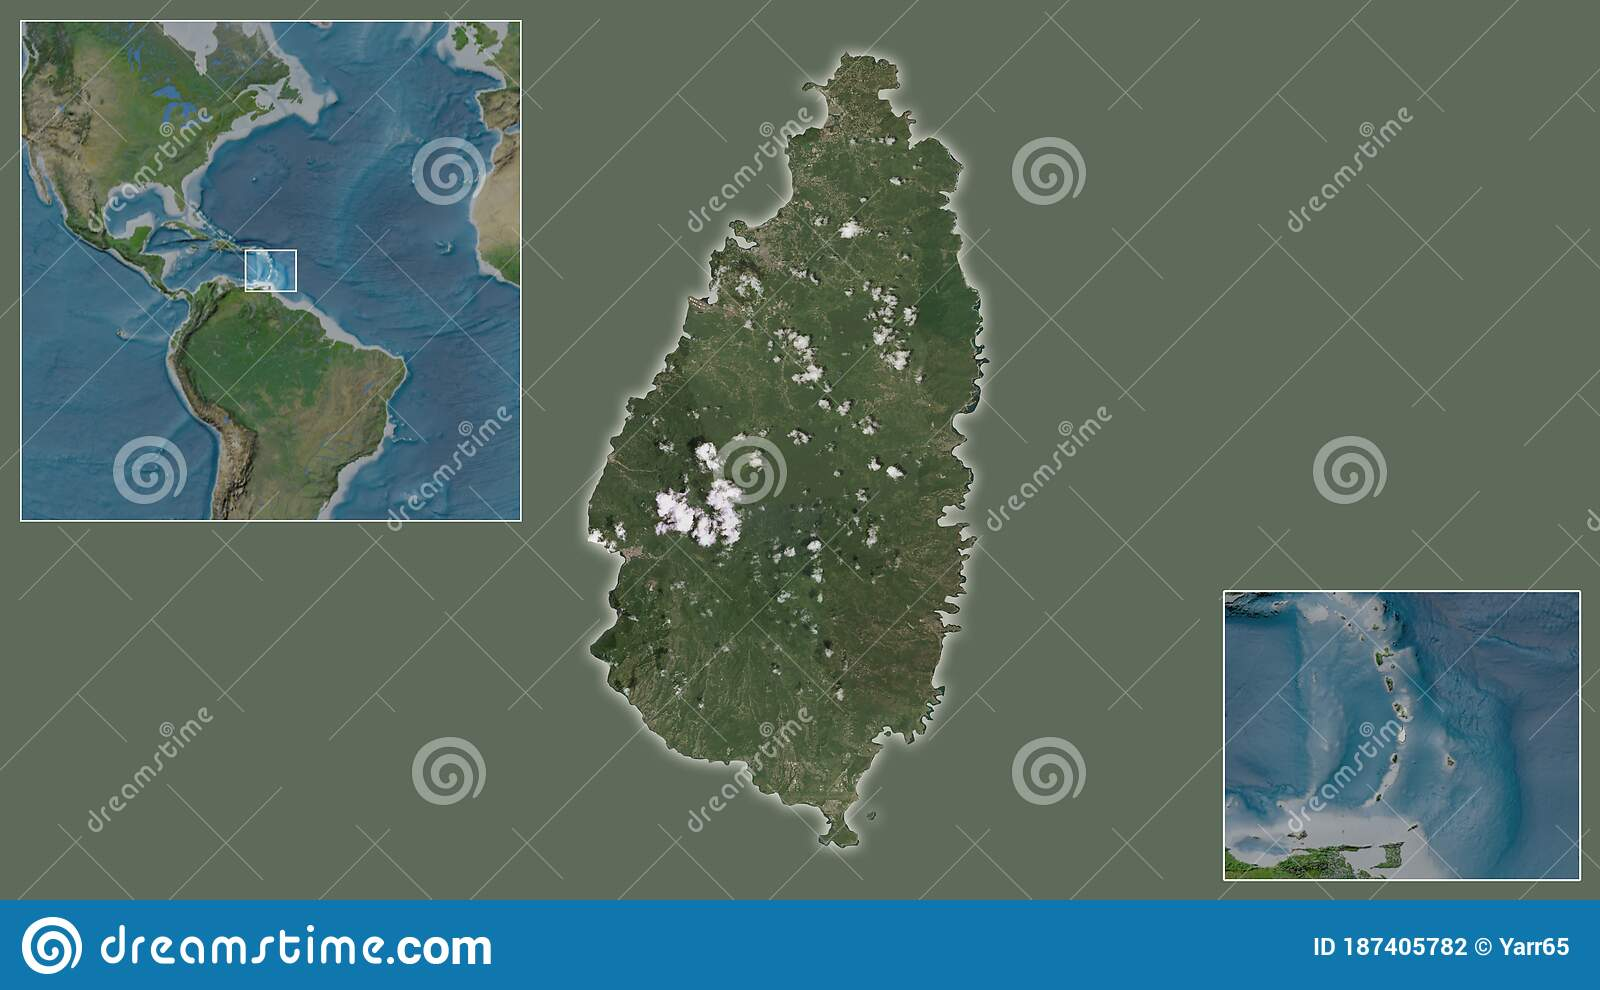 Image of: Saint Lucia Satellite Country And Its Location Stock Illustration Illustration Of Bathymetry Area 187405782